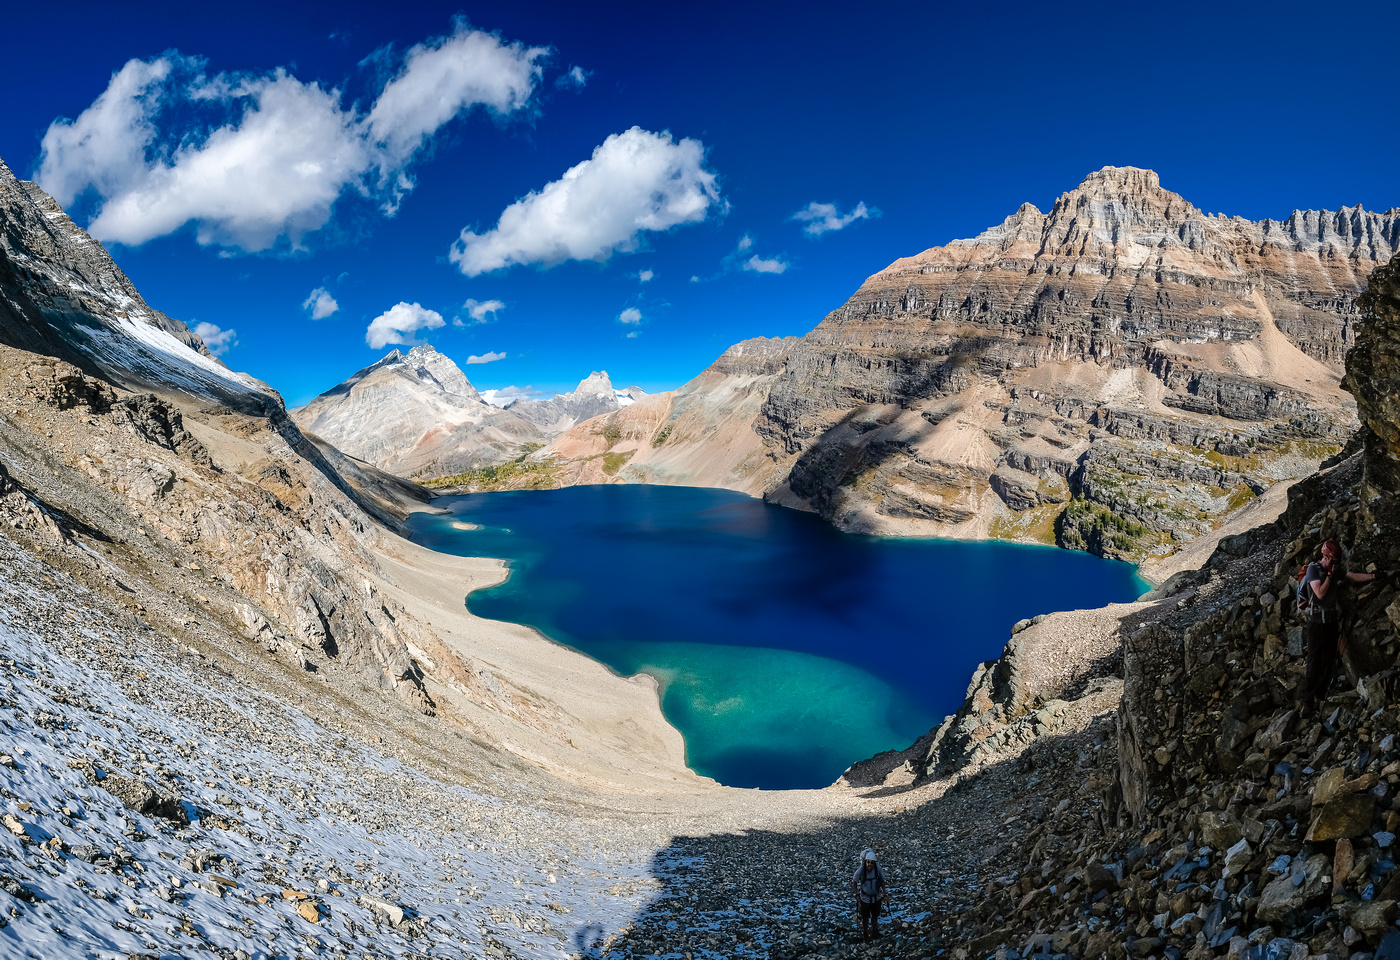 The view of McArthur Lake was a nice distraction behind us as we grunted up to Biddle Pass.